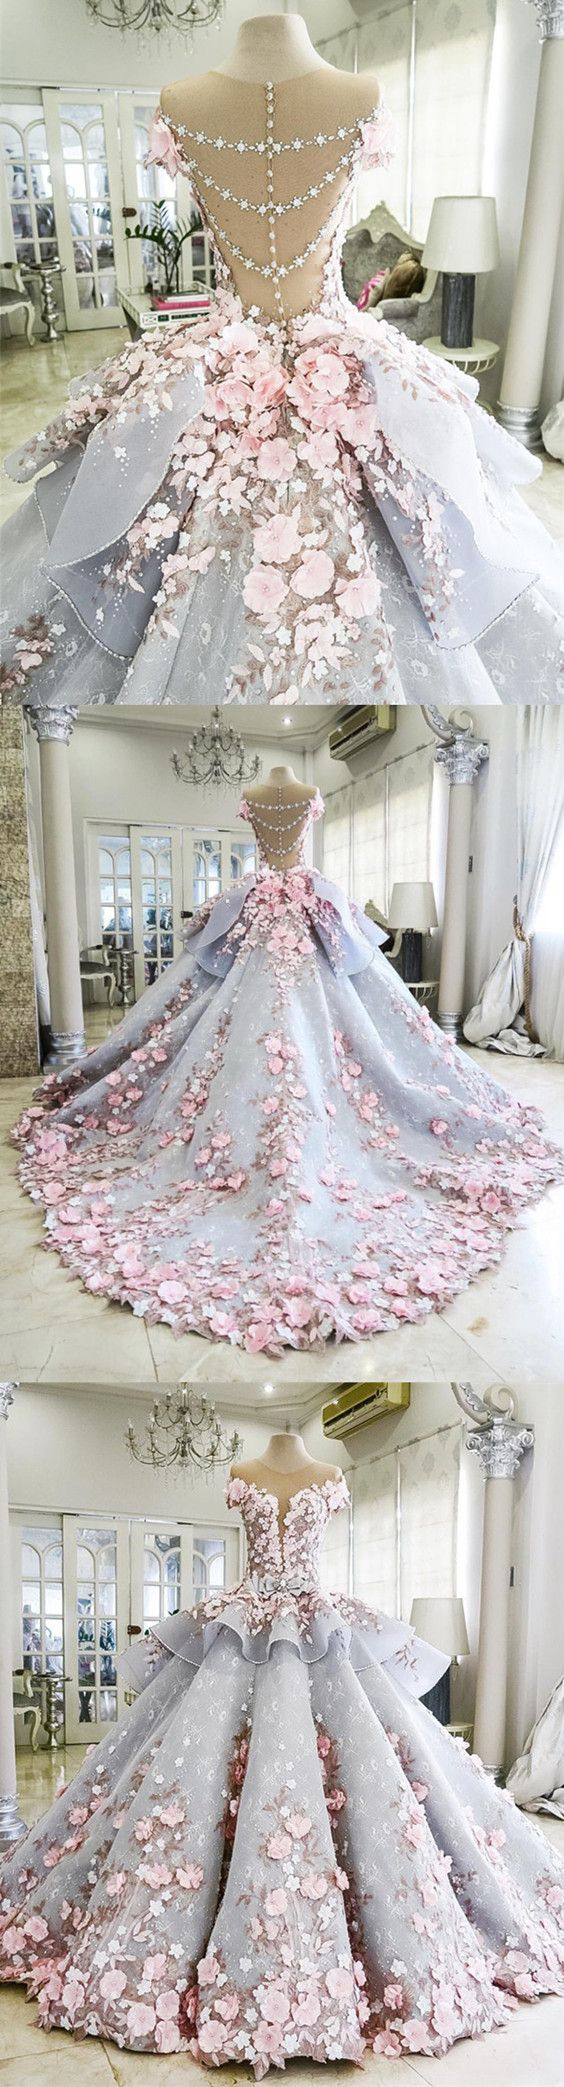 All Details Of This Light Blue Lace Ball Gown Wedding Dresses Is The Love For Bride The B Light Blue Wedding Dress Lace Blue Lace Wedding Dress Wedding Dresses